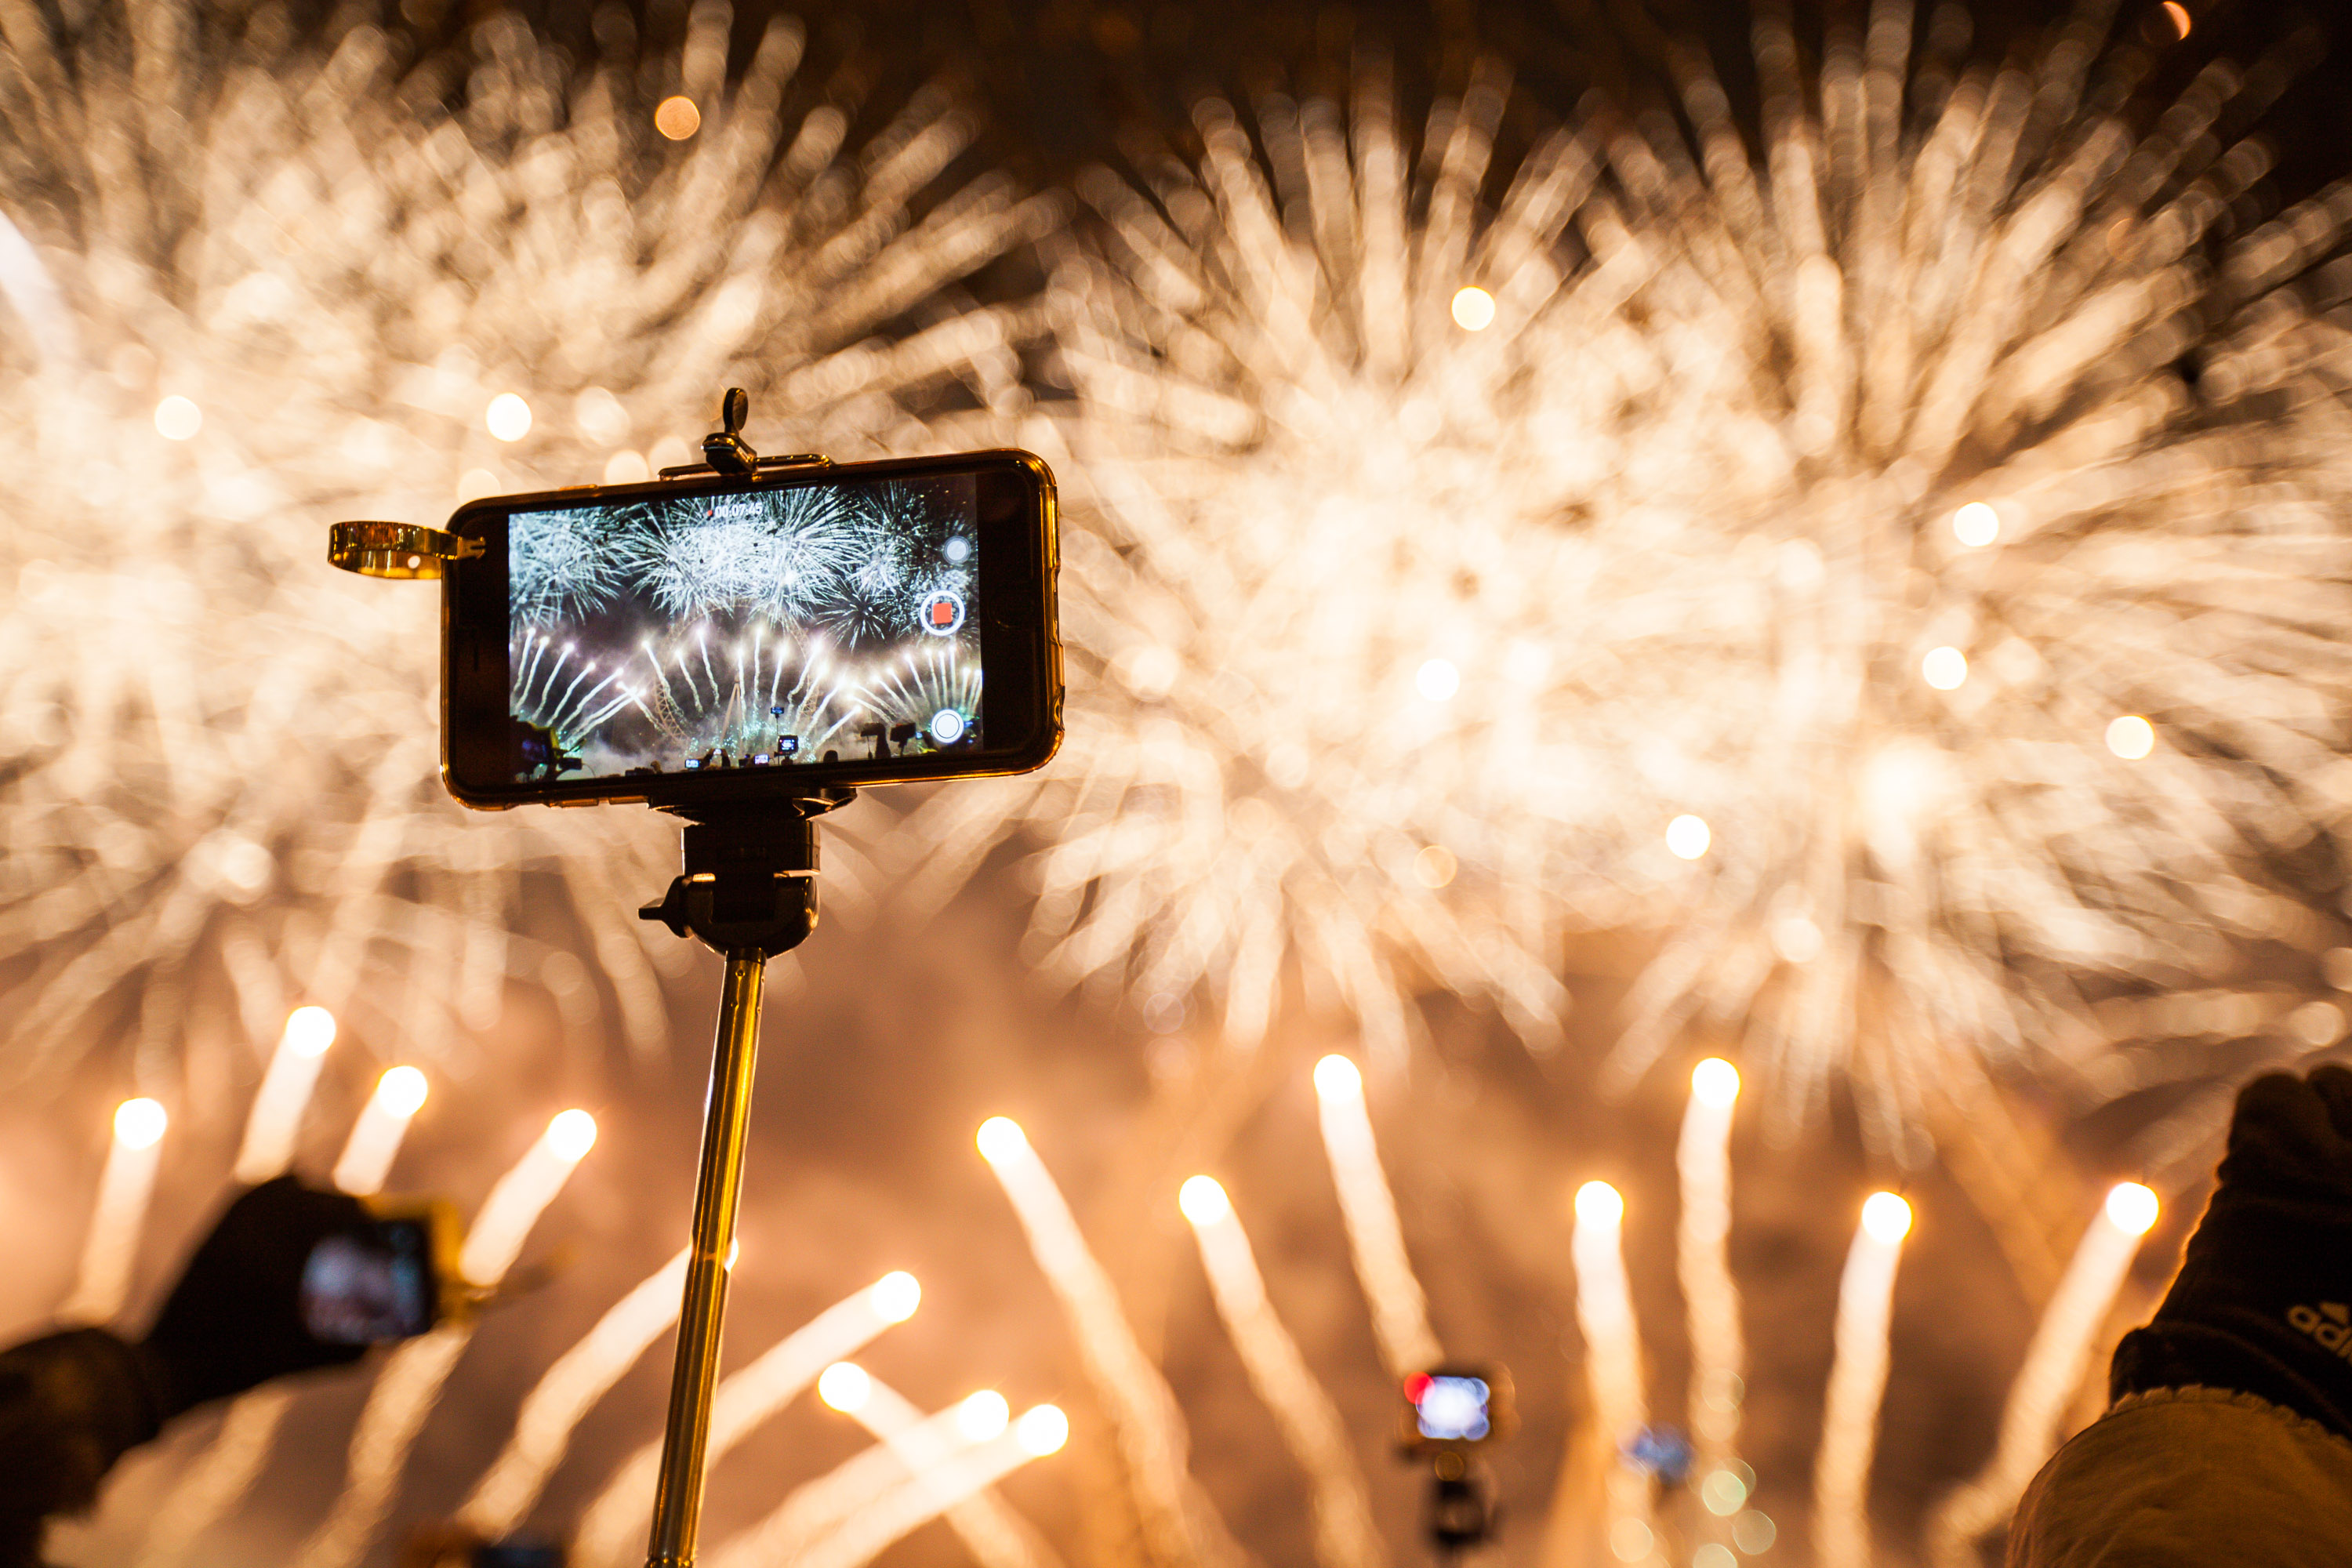 Jan. 1, 2015 - London, London, UK - London, UK. The new years fireworks display is caught on a member of the crowds phone